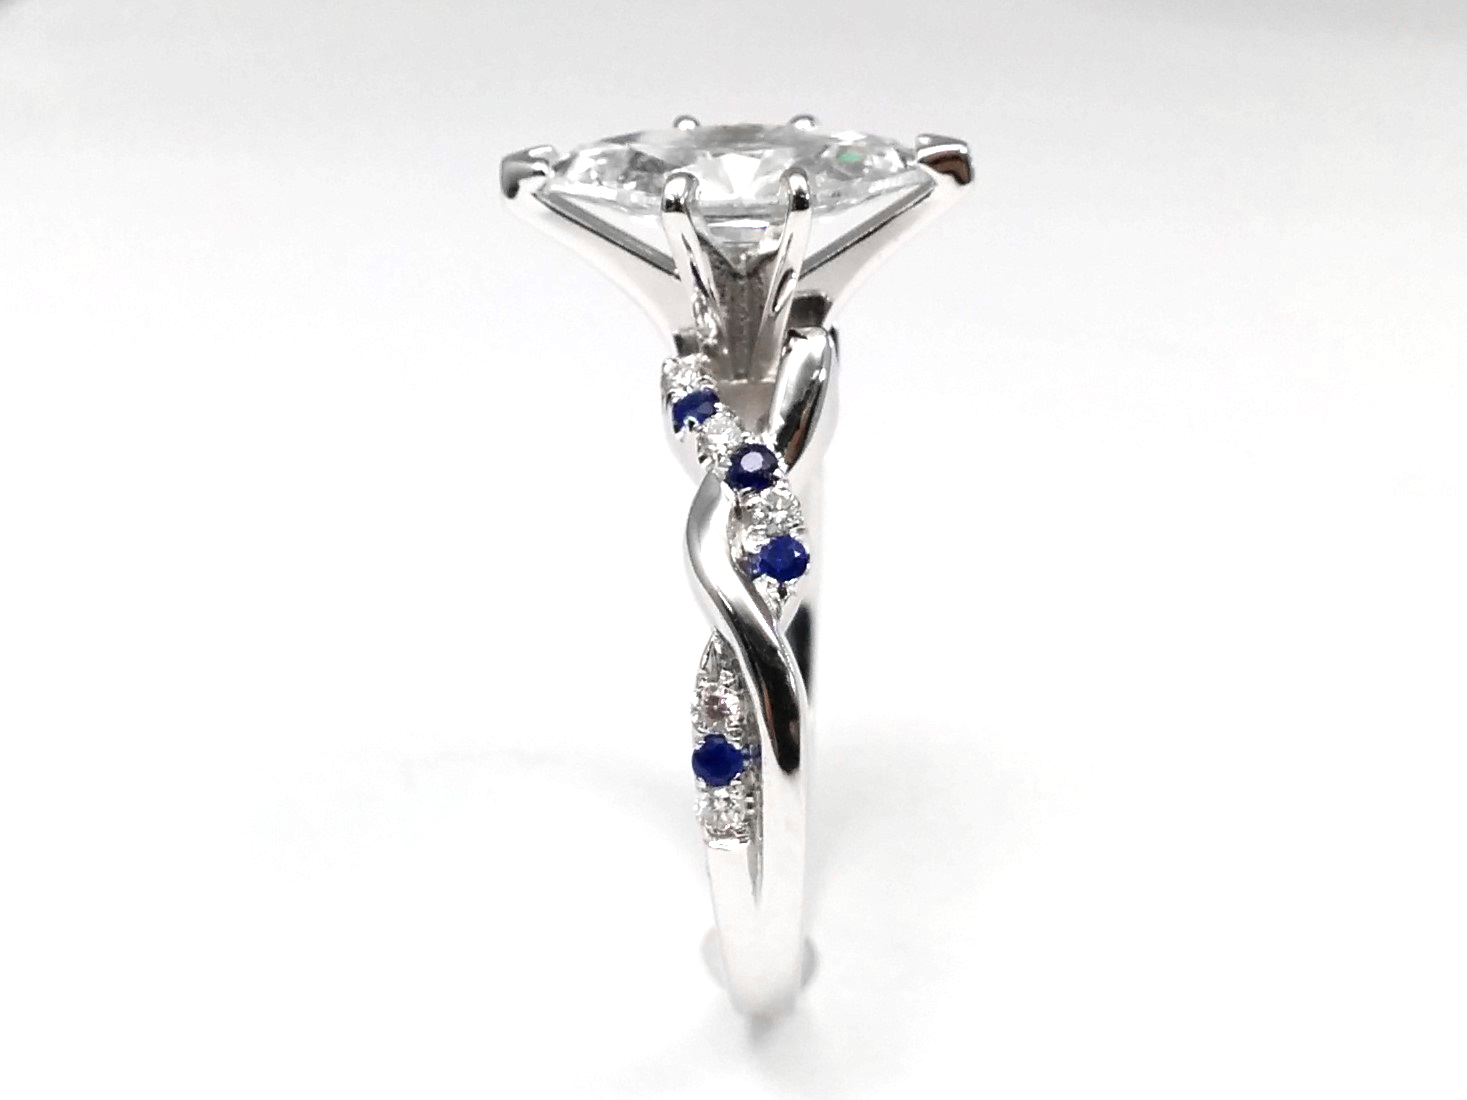 Marquise Diamond Petite Twisted Pave Band With Blue Sapphires Engagement Ring in 14K White Gold